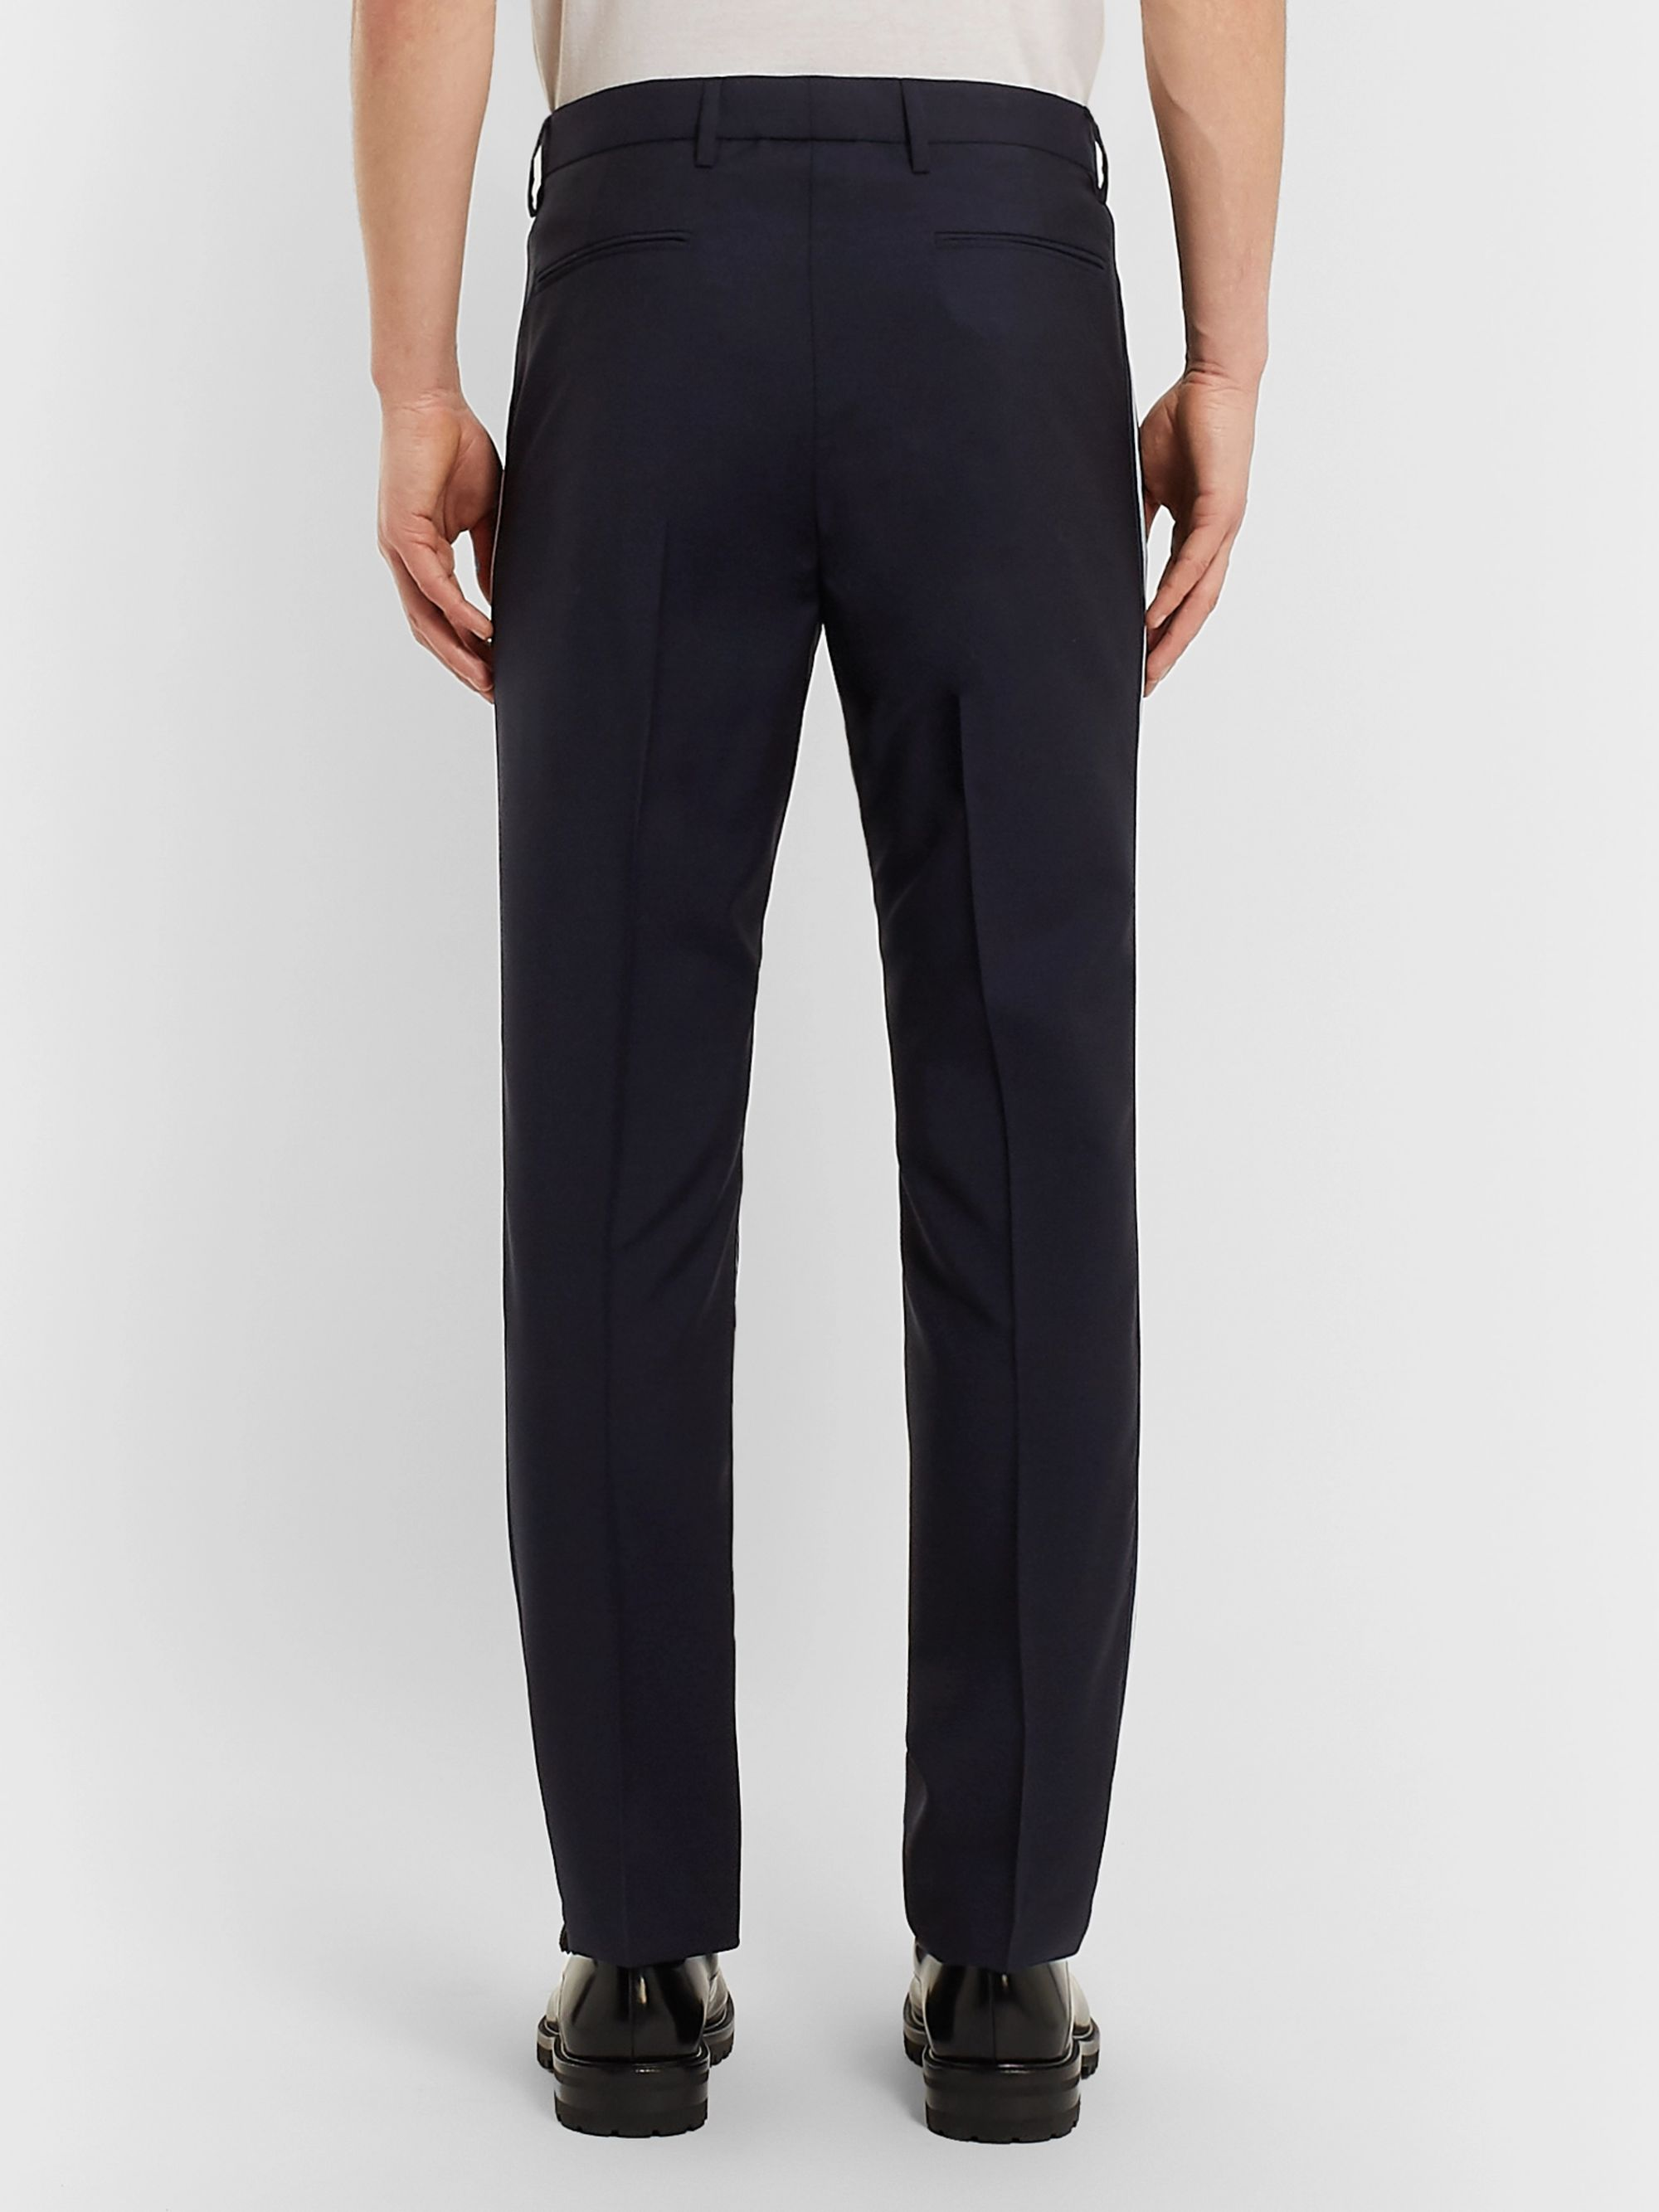 Valentino Navy Slim-Fit Stripe-Trimmed Wool and Mohair-Blend Trousers